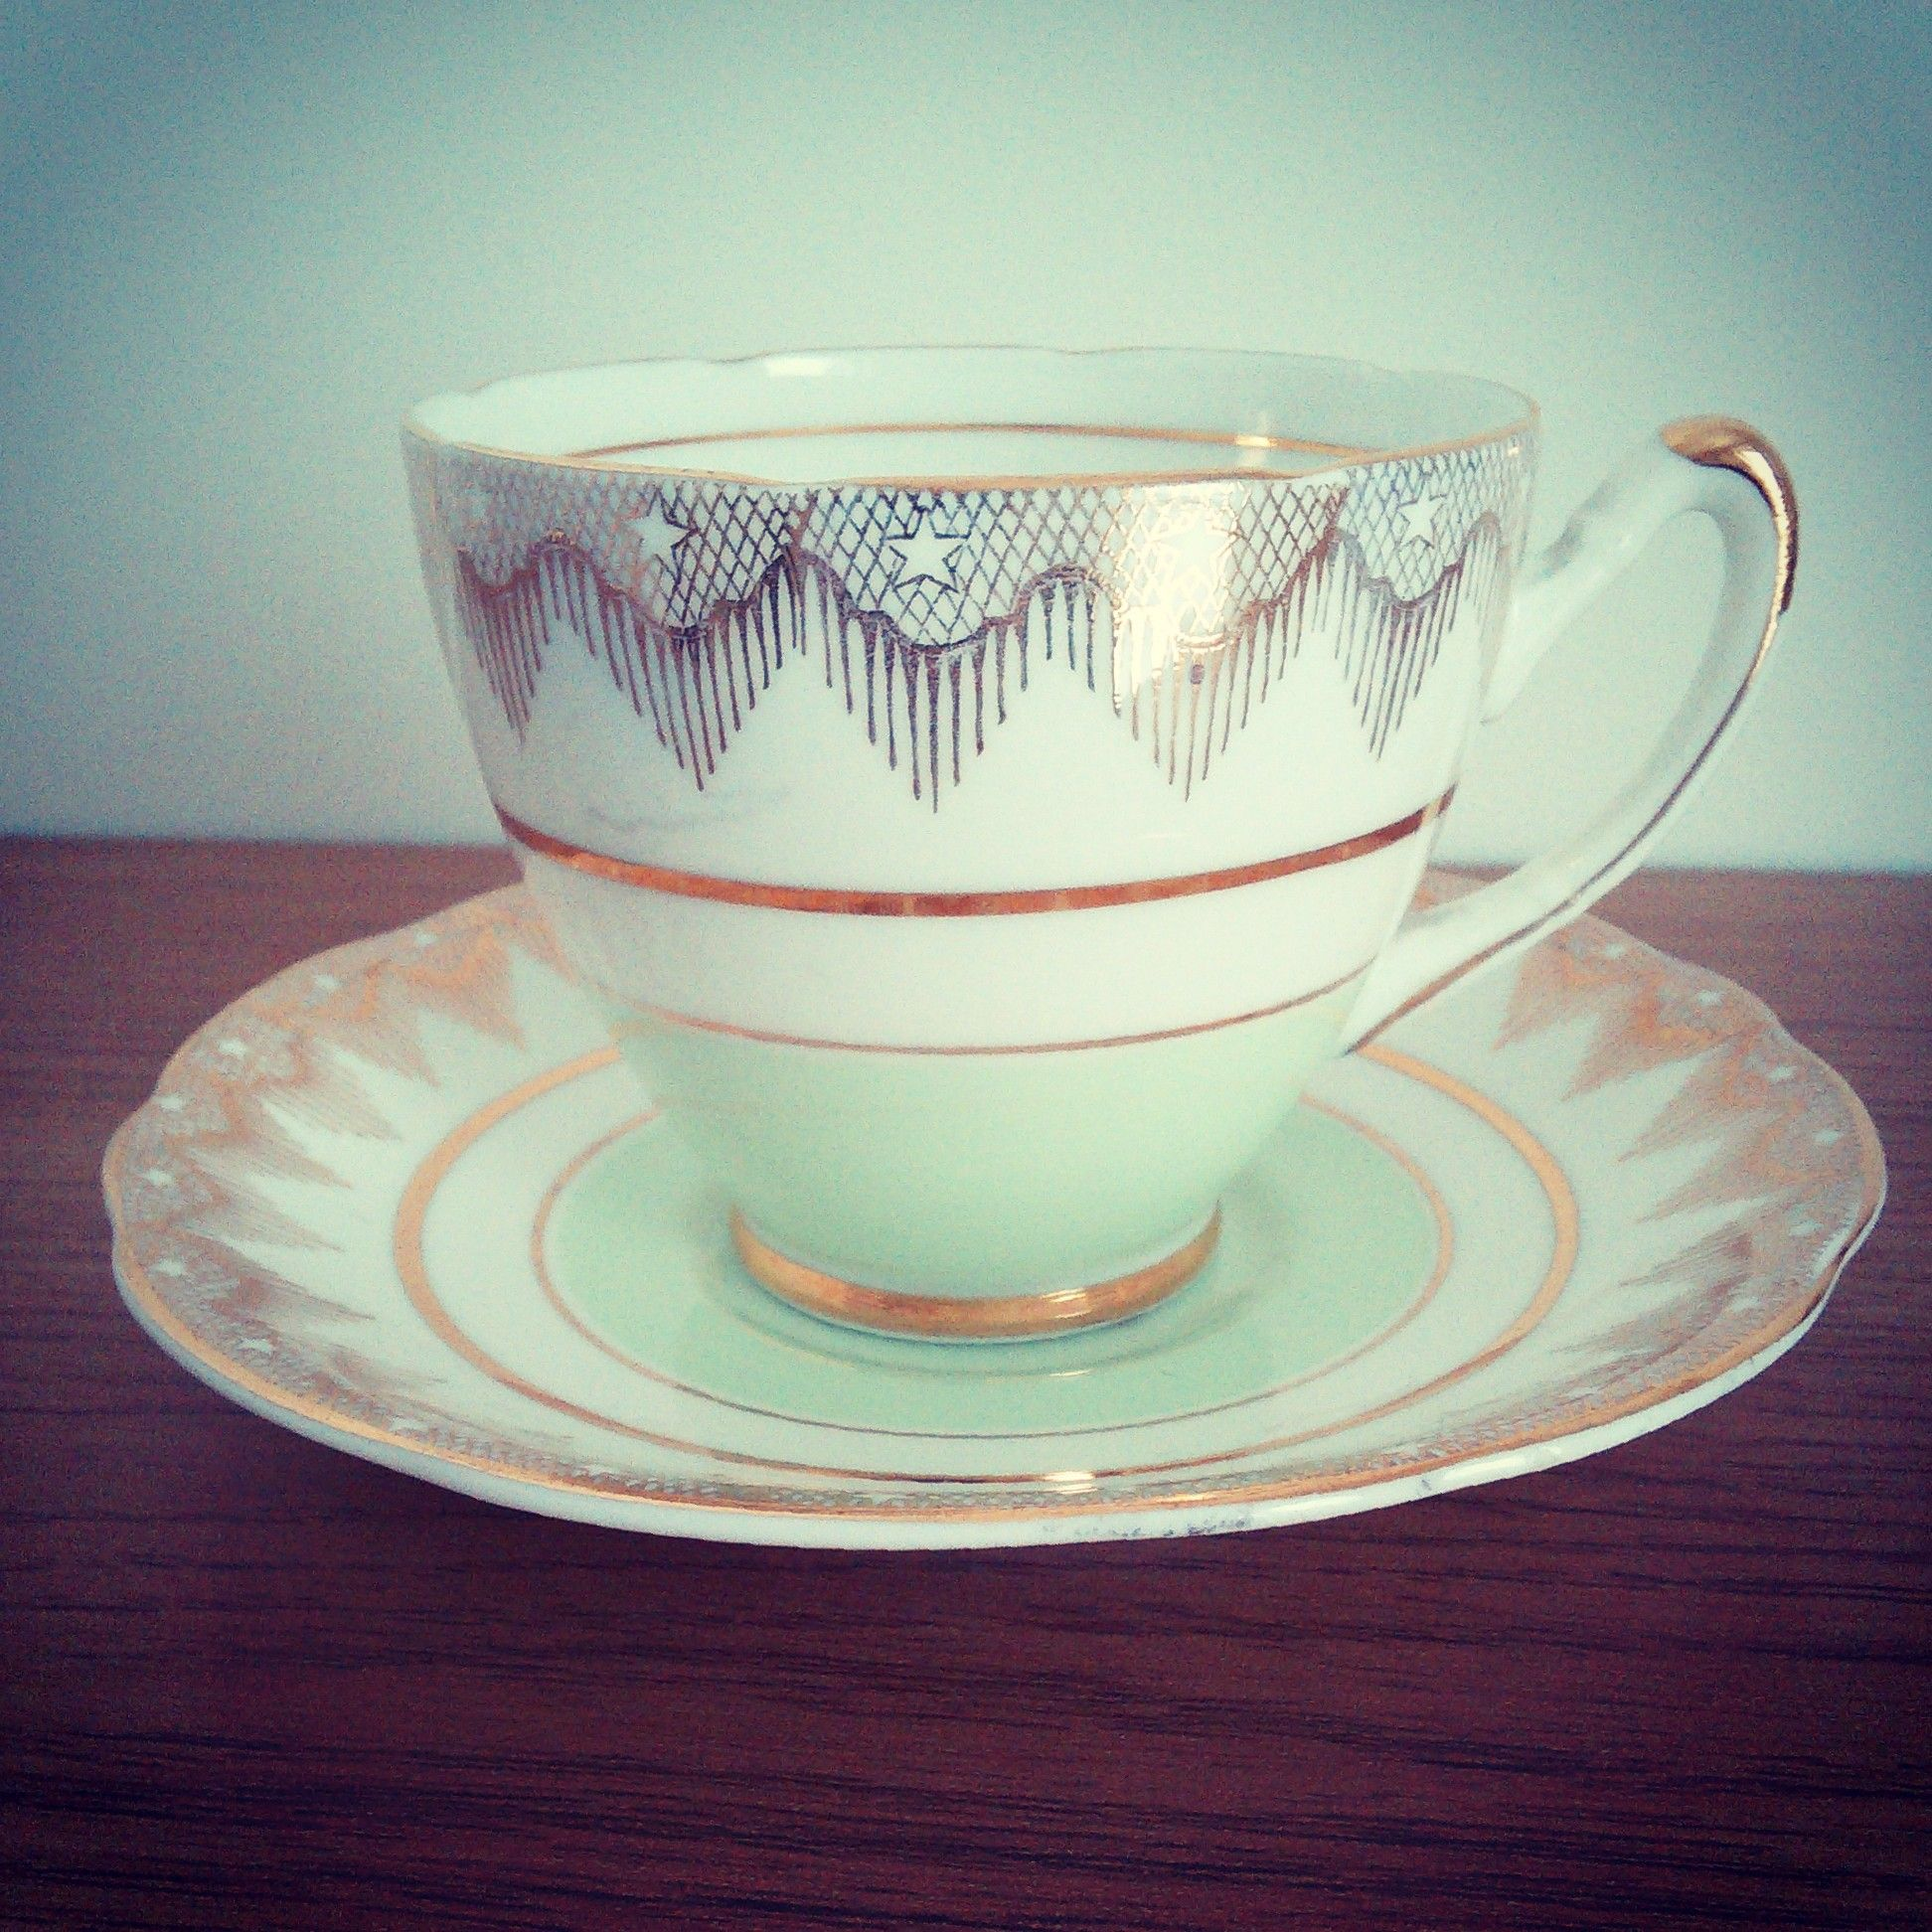 Vintage Imperial China Cup & Saucer